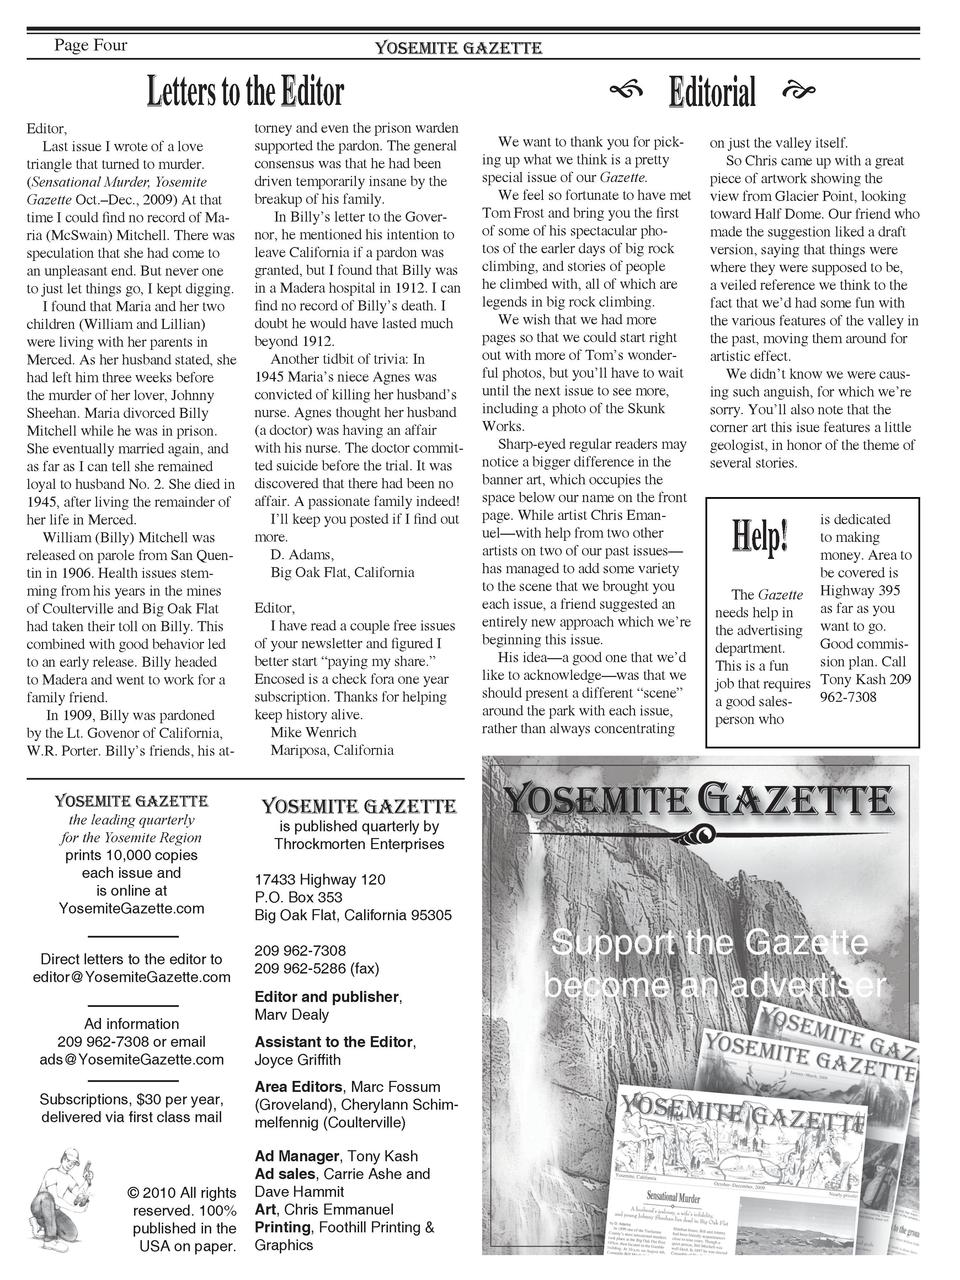 Page Four  Yosemite Gazette  Letters to the Editor Editor, Last issue I wrote of a love triangle that turned to murder.  S...